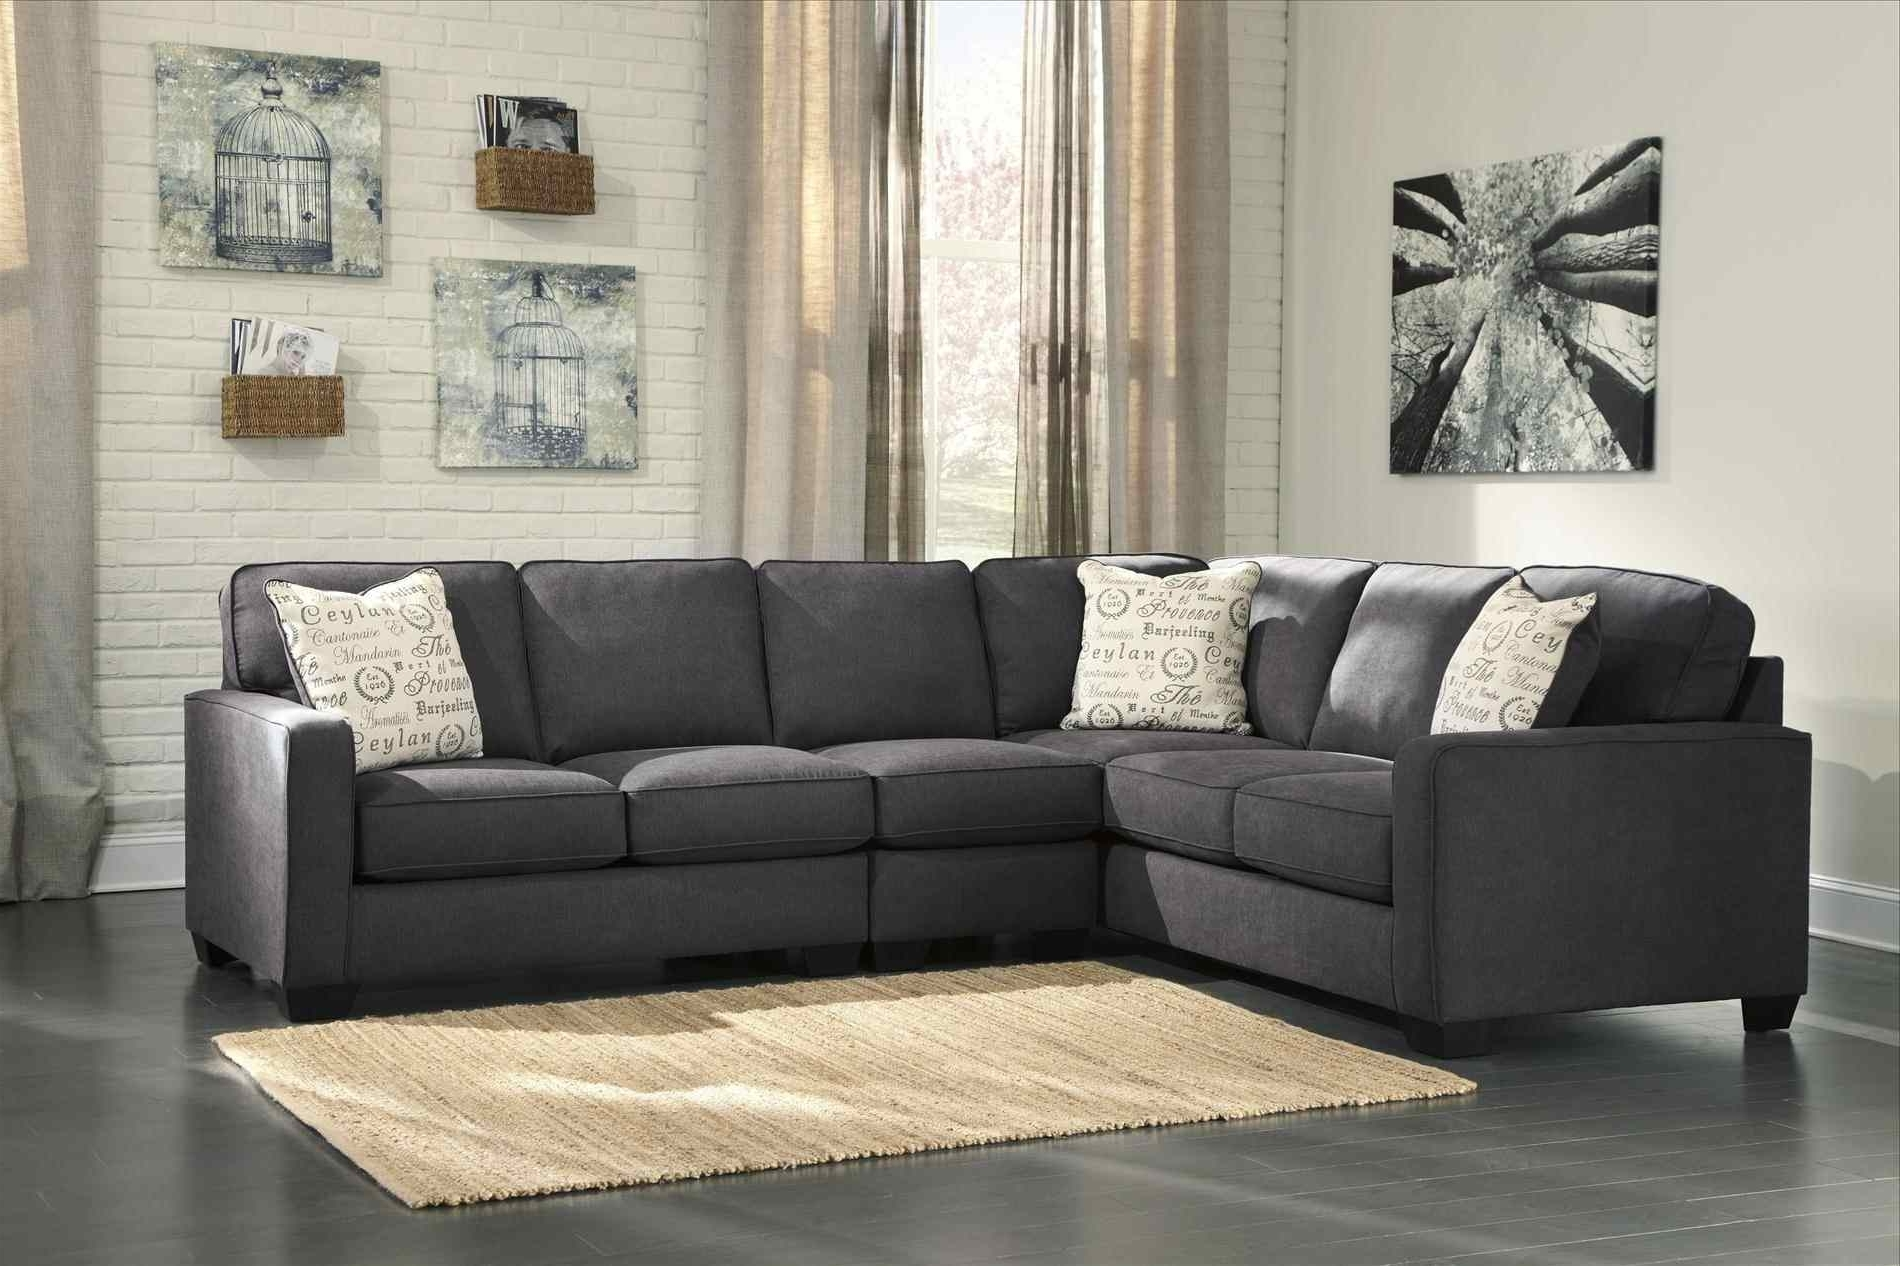 Sofa : Simmons Chaise Gray Sectional Sofa With Cheap S Under Pertaining To Best And Newest Simmons Chaise Sofas (View 14 of 15)